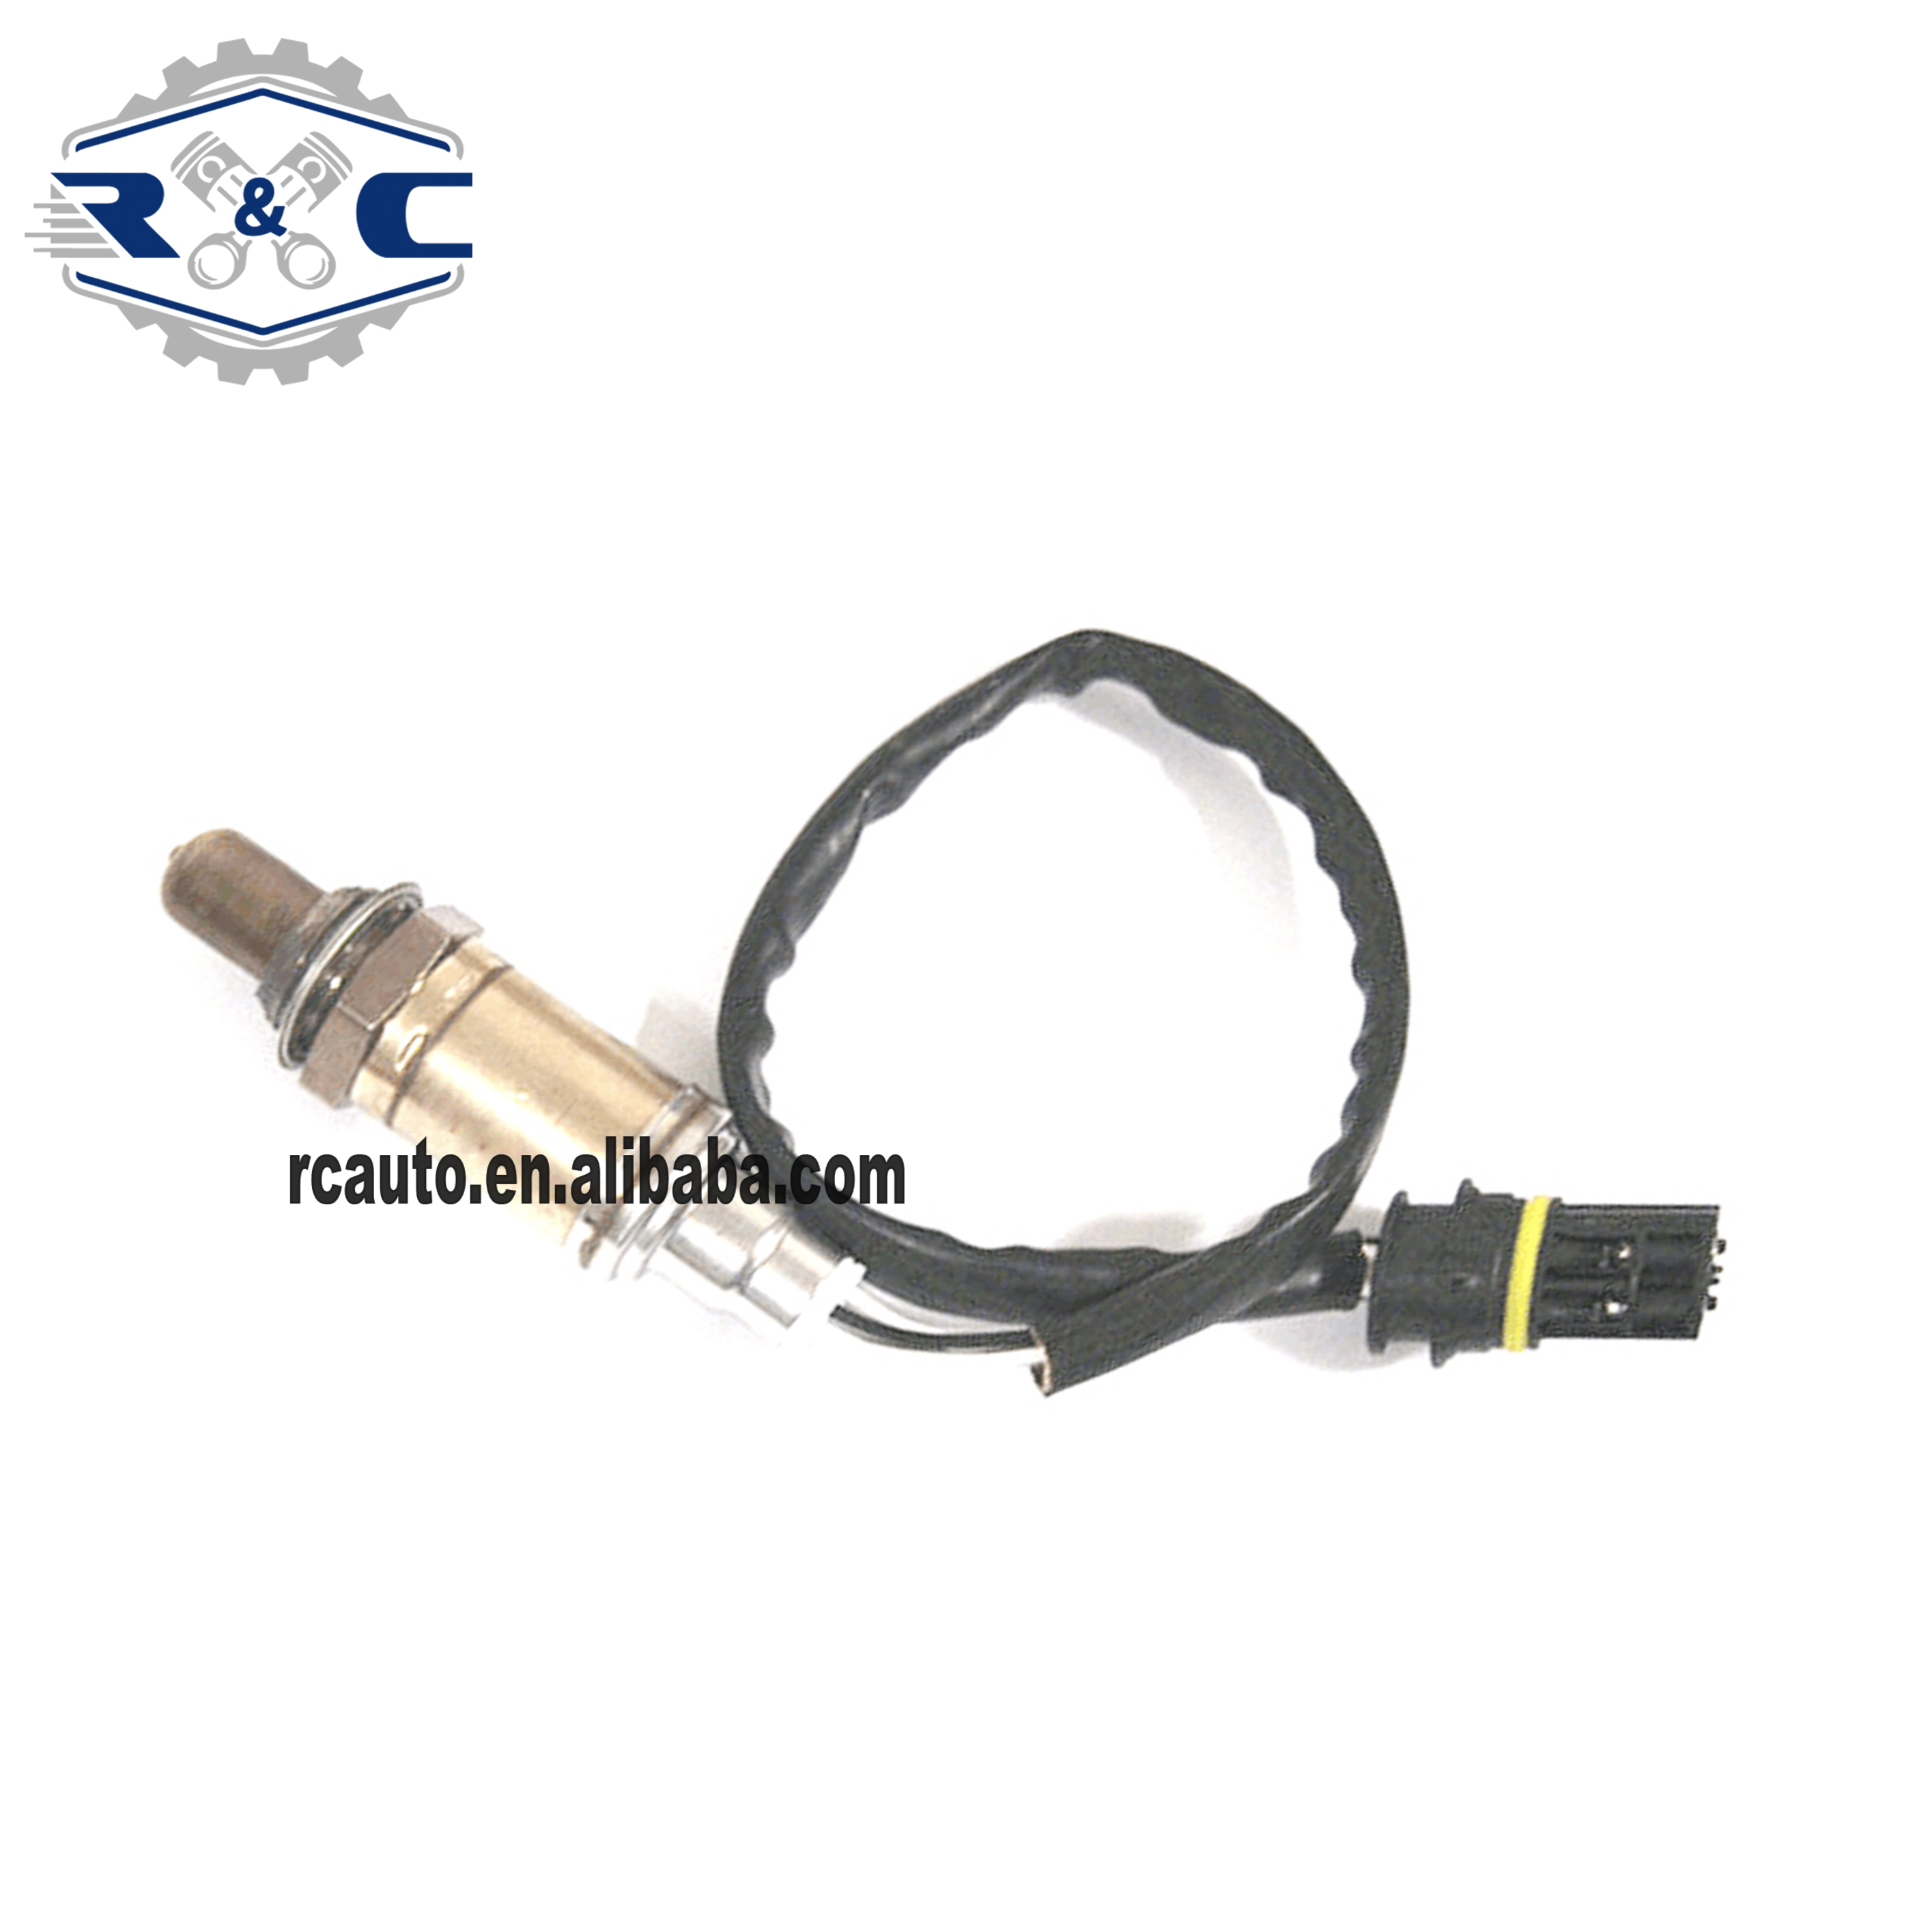 R&amp;C High Quality Sonda Lambda 0005408217 For Mercedes-benz S-Klasse <strong>W140</strong> 2.8-3.2L 1991-1998 A/F Ratio sensor